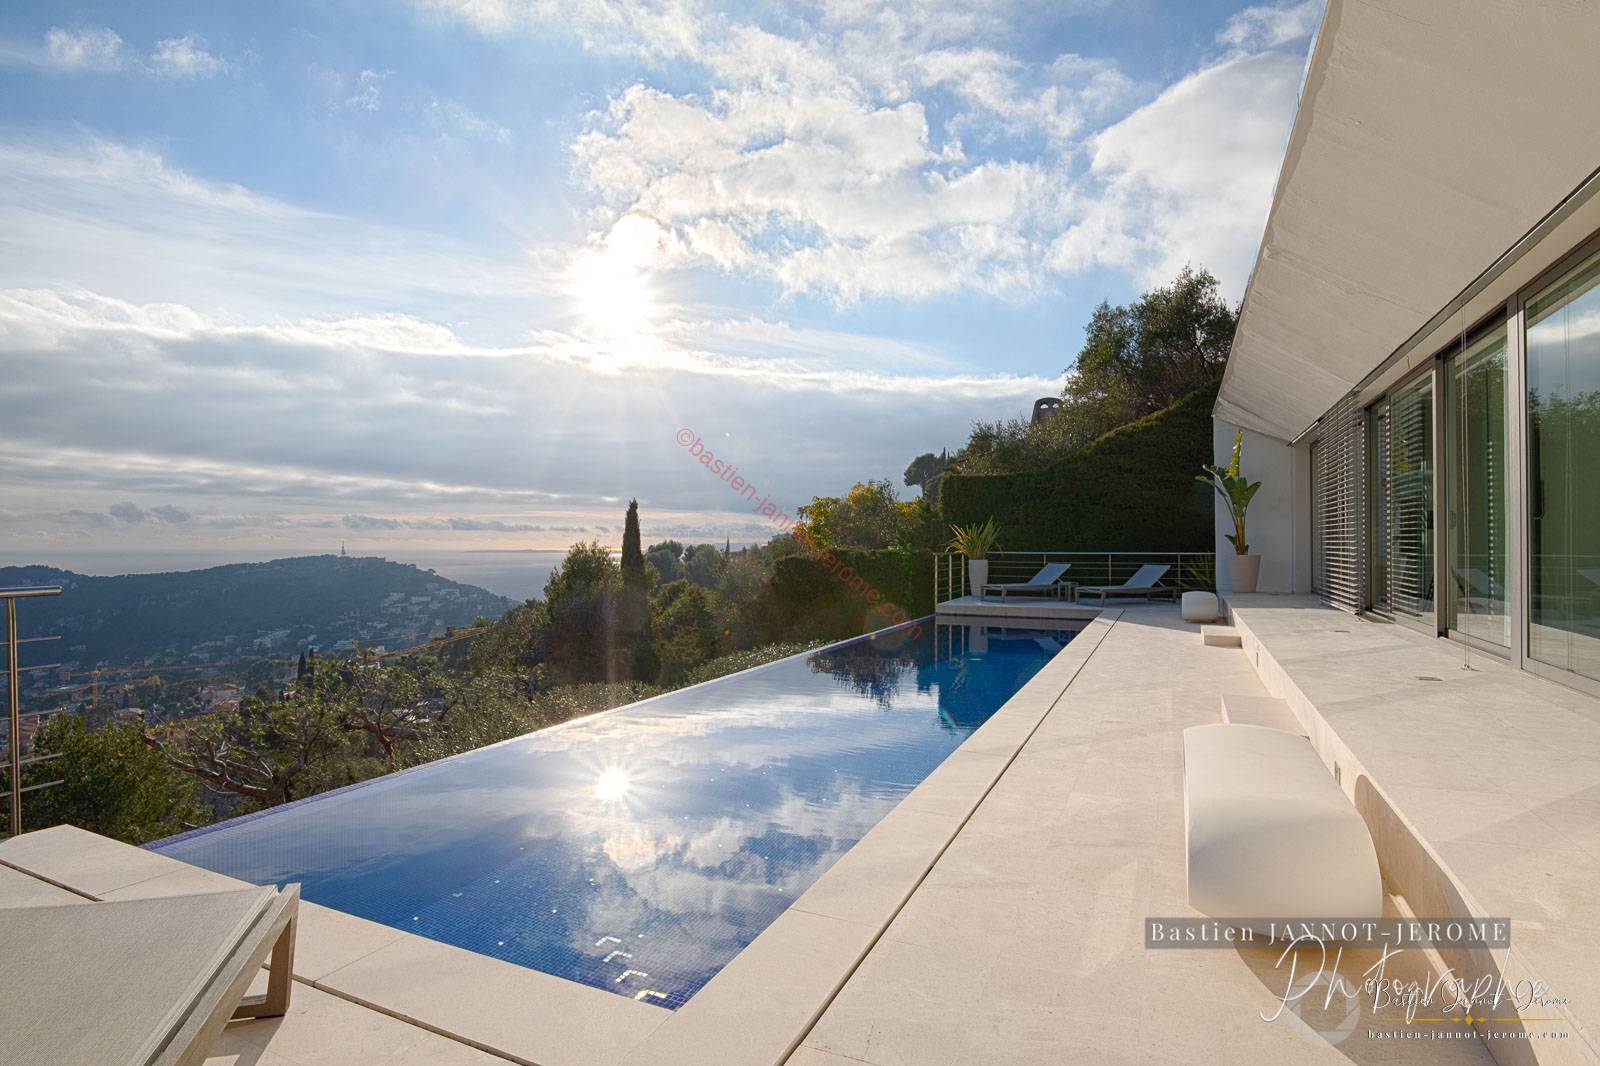 real estate french riviera photographer→ Bastien JANNOT-JEROME